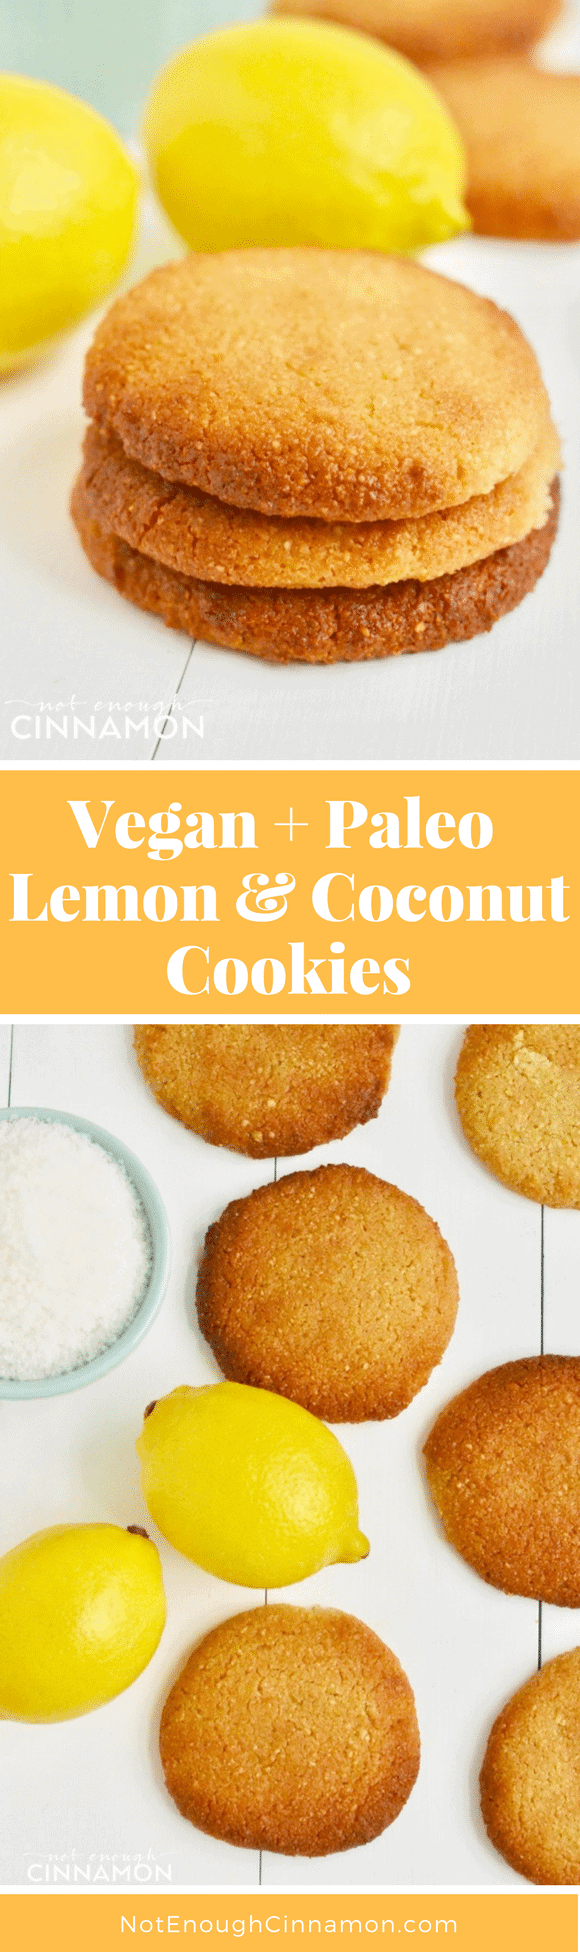 Gluten free, vegan and paleo soft cookies that taste just like sunshine! Click here to see this easy recipe on NotEnoughCinnamon.com